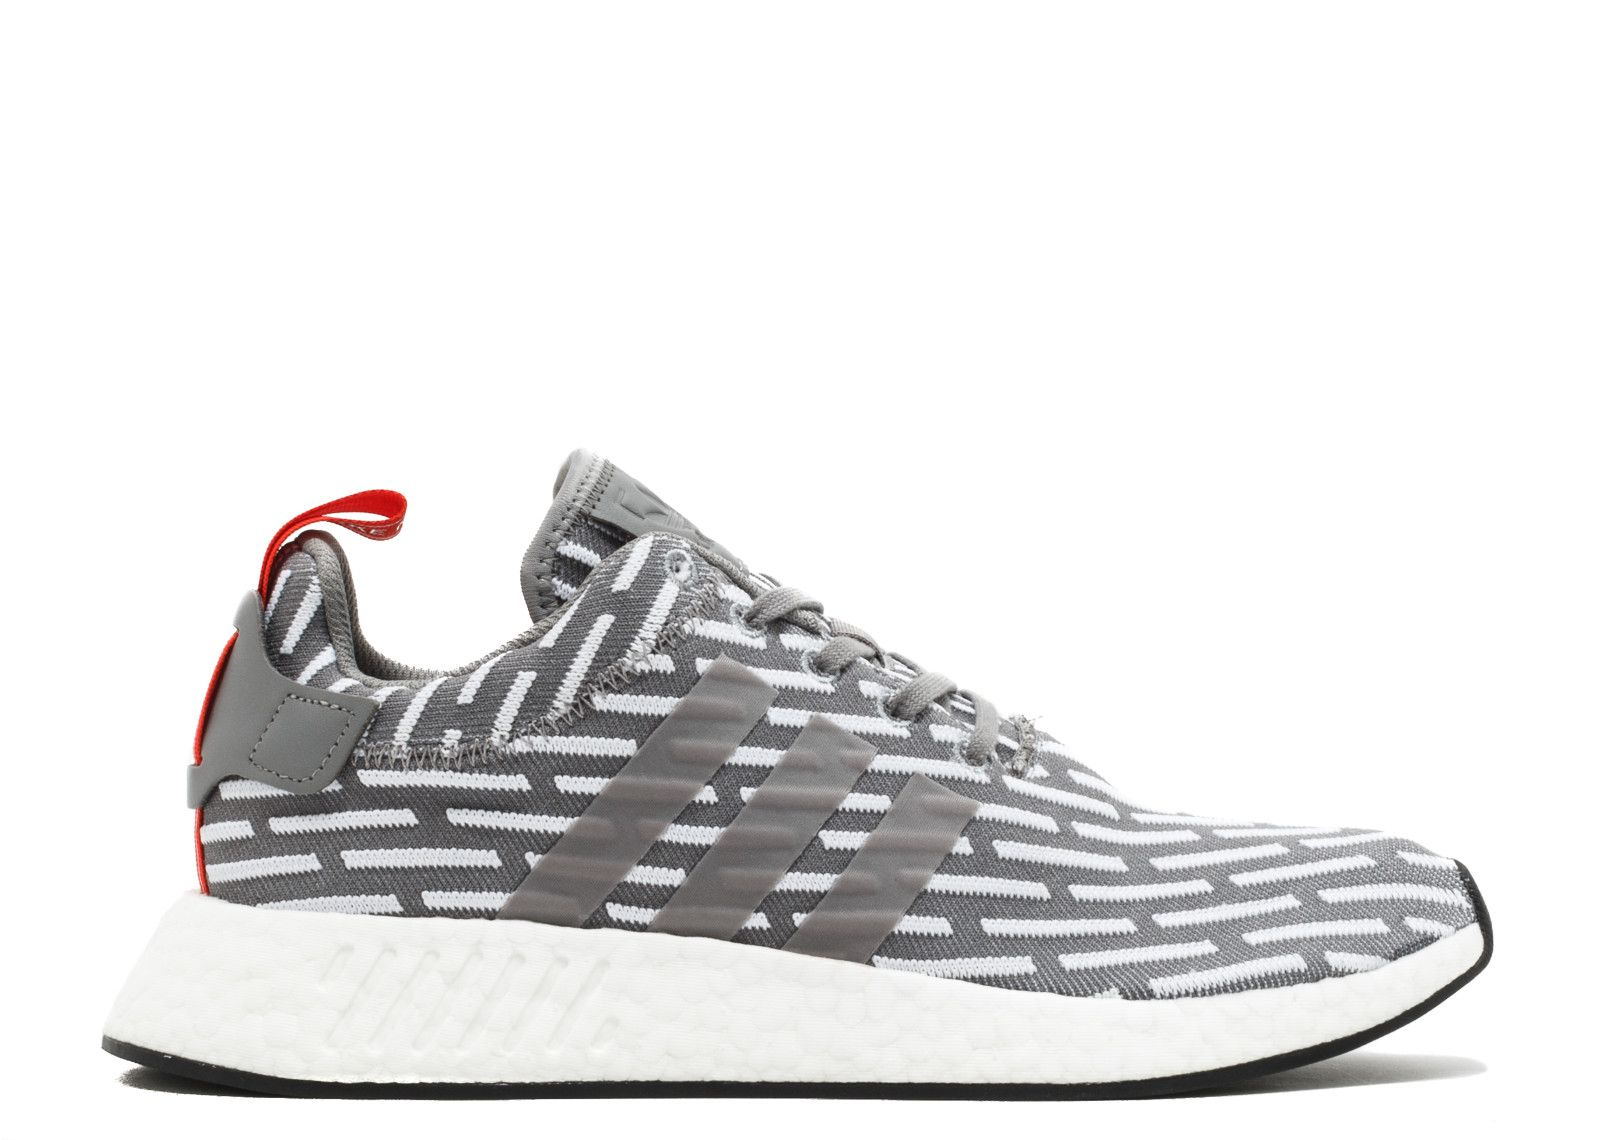 20172018 New Arrival NMD R2 JD SPORTS grey white red